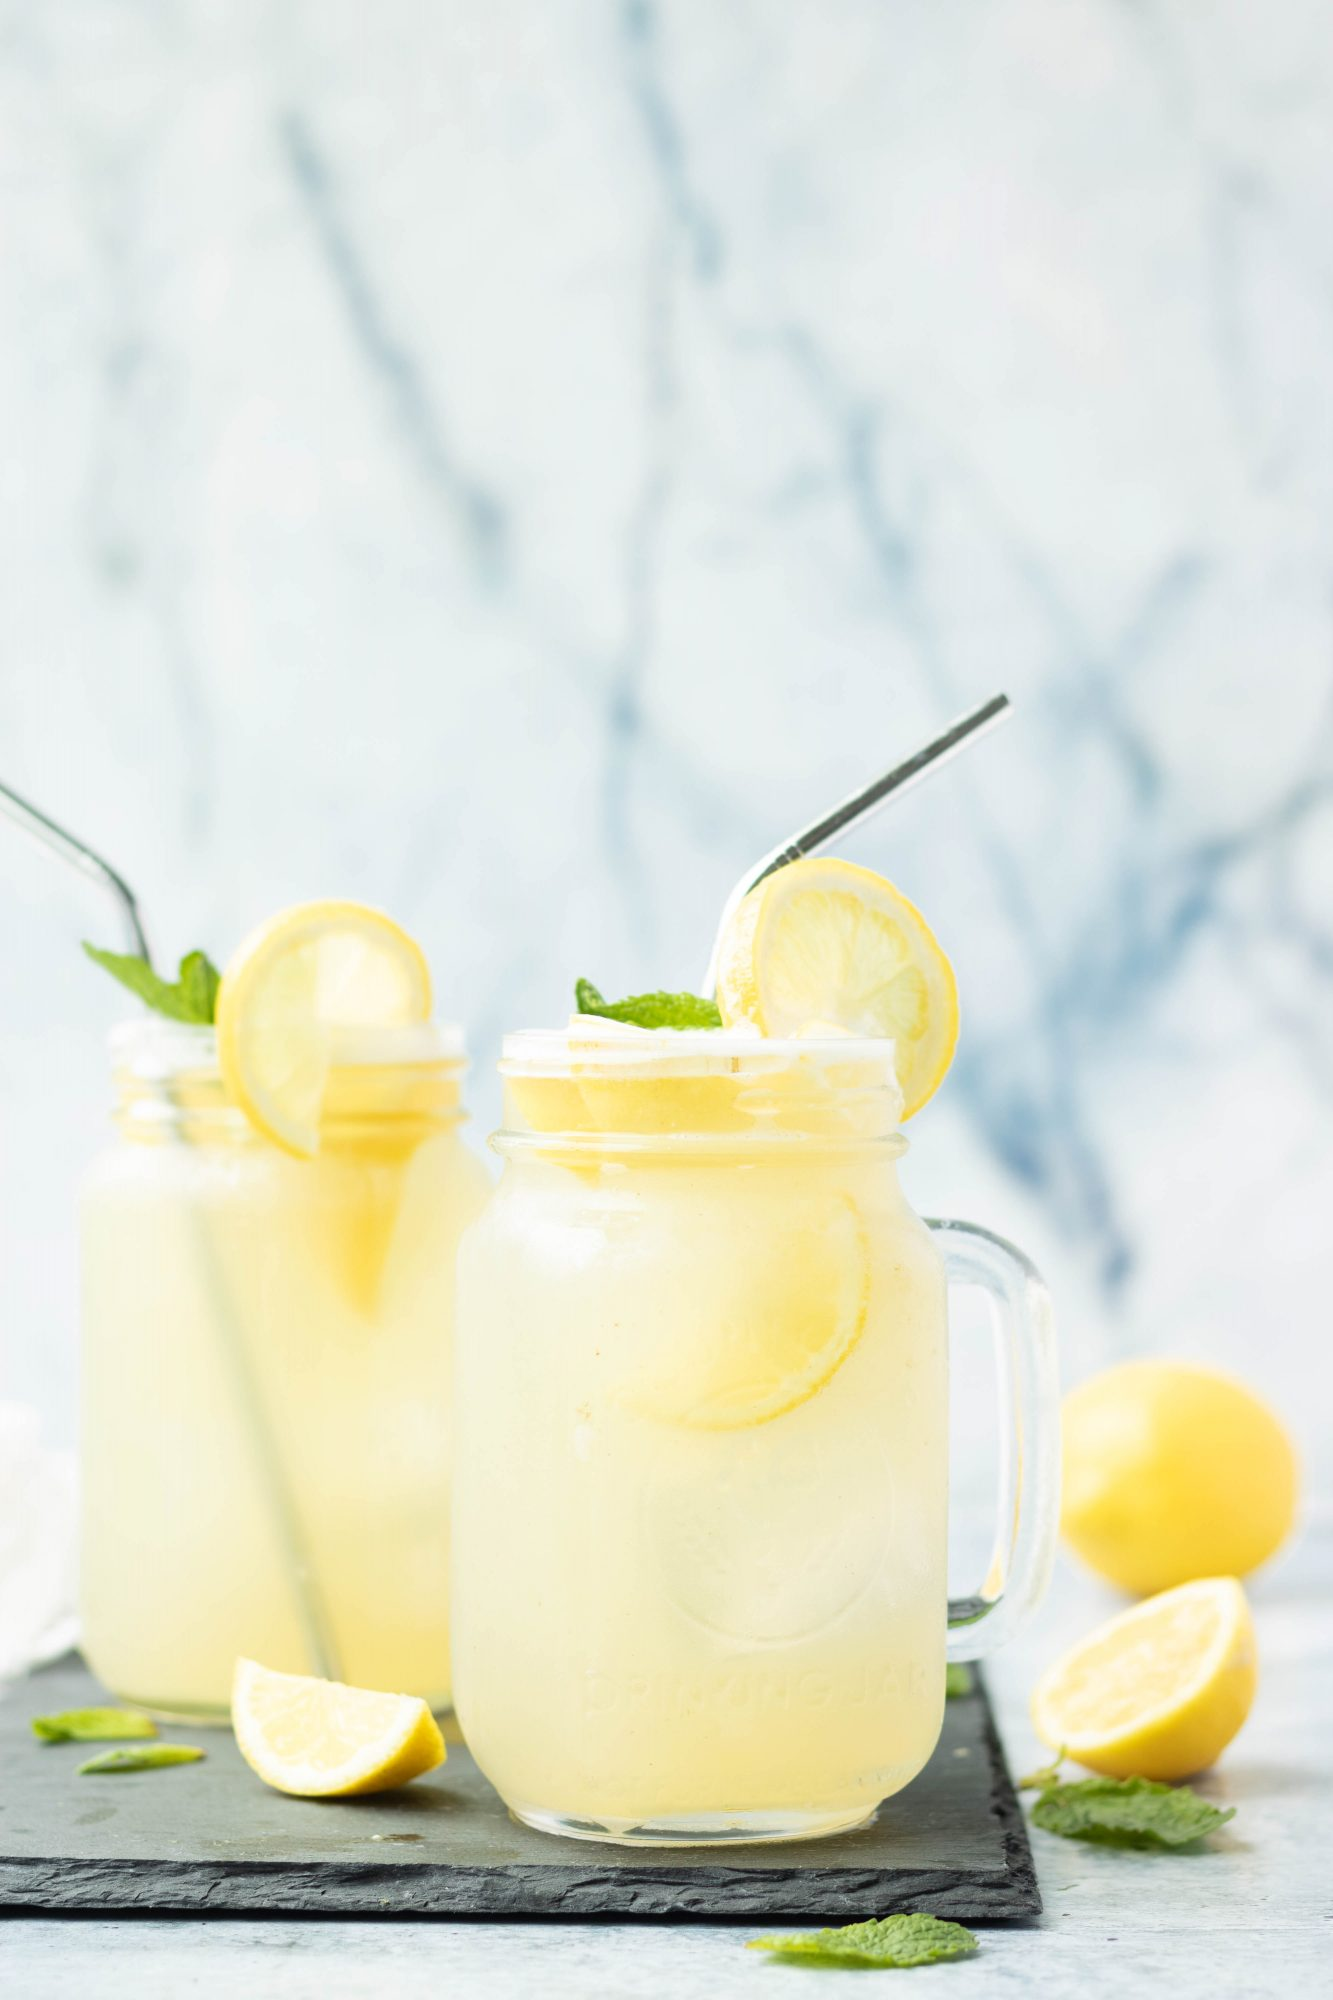 Homemade Refined Sugar-Free Lemonade